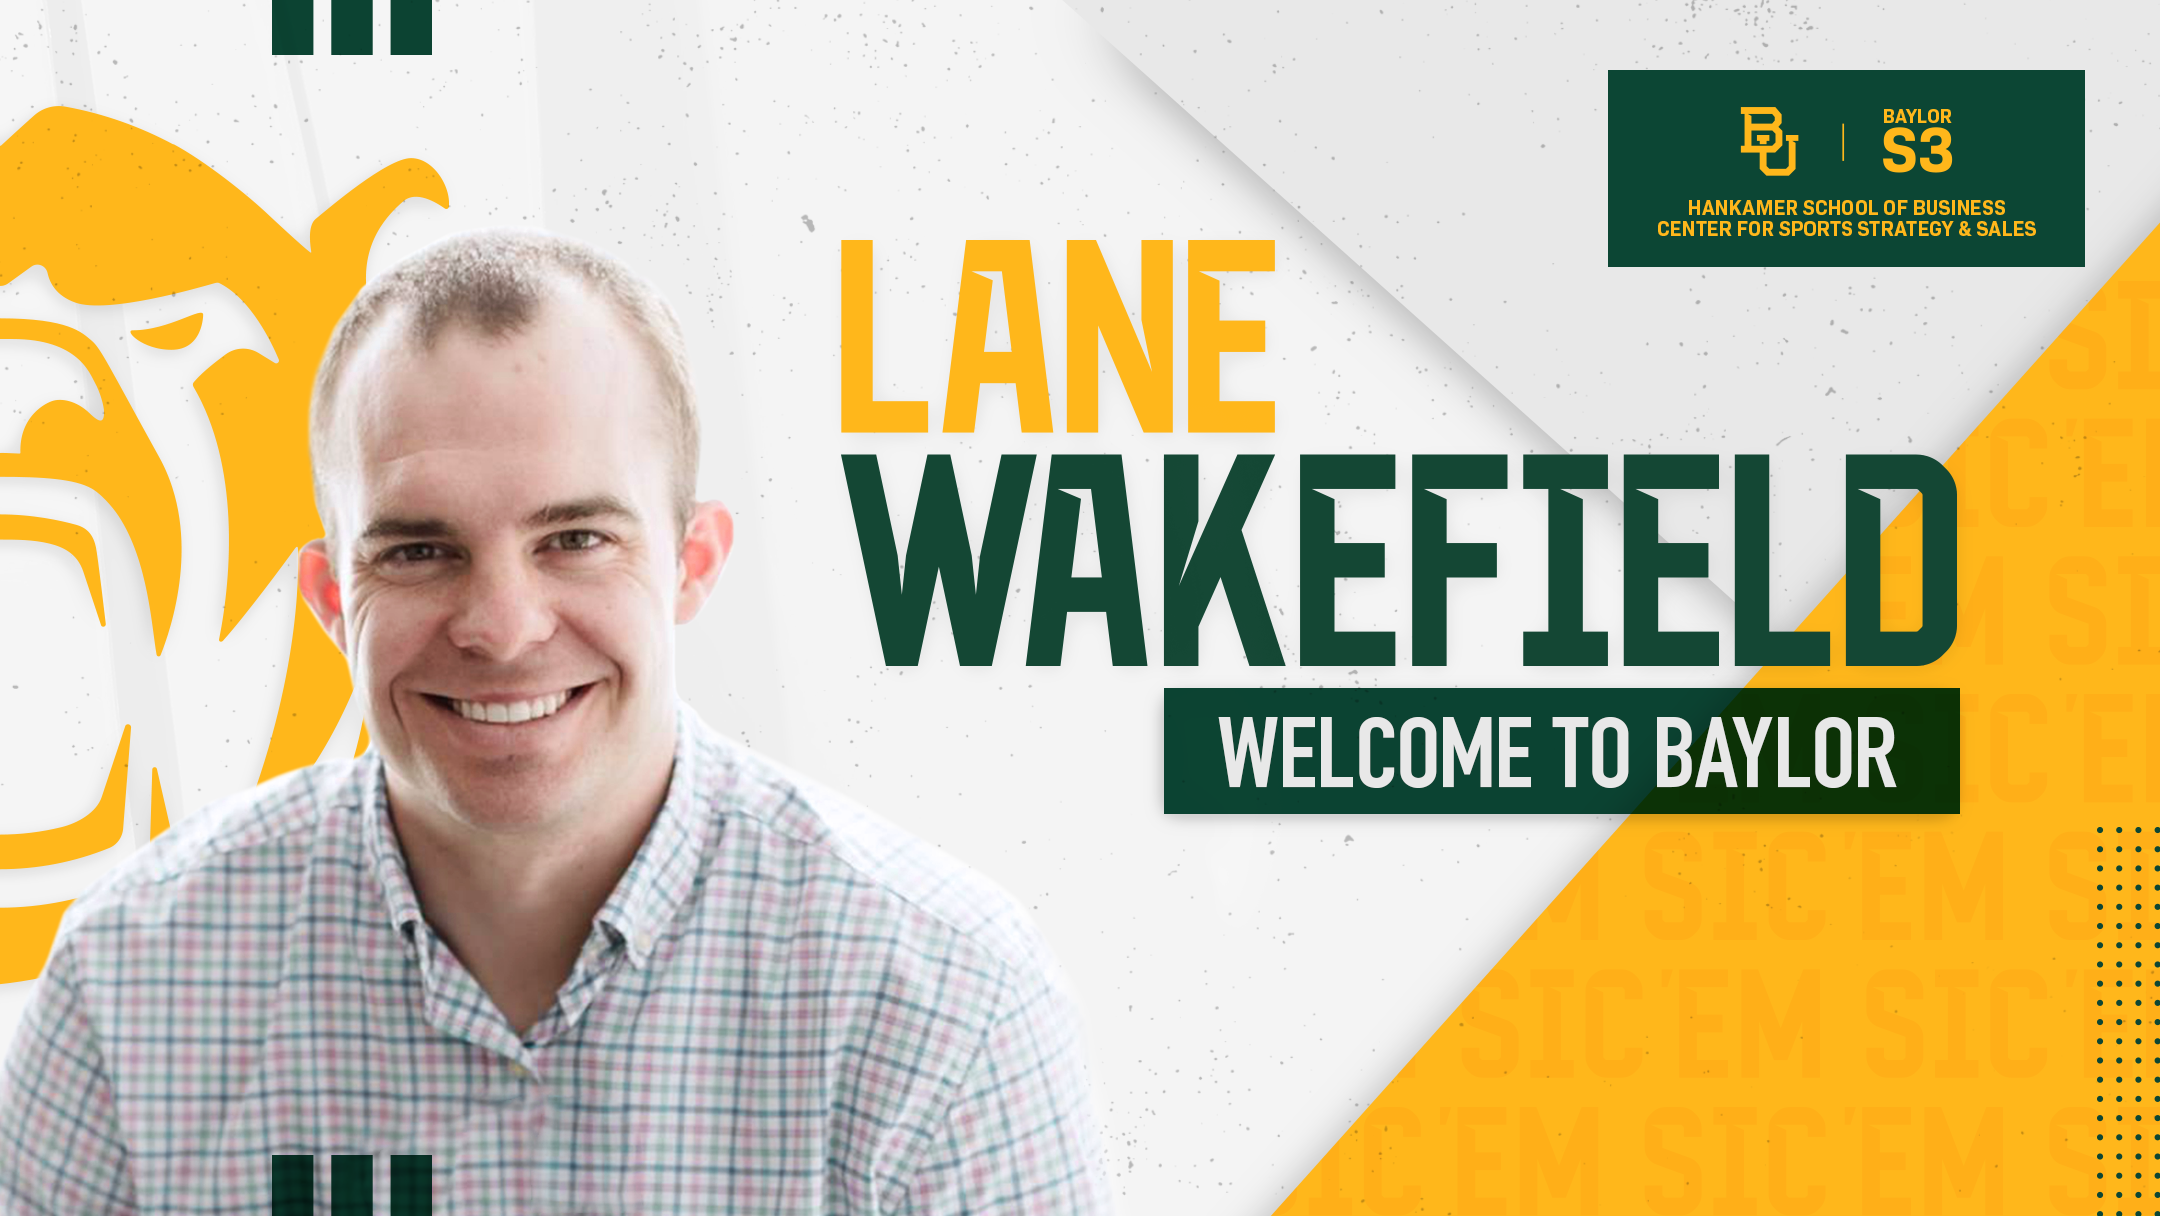 Baylor S3 Welcomes Dr. Lane Wakefield as Director